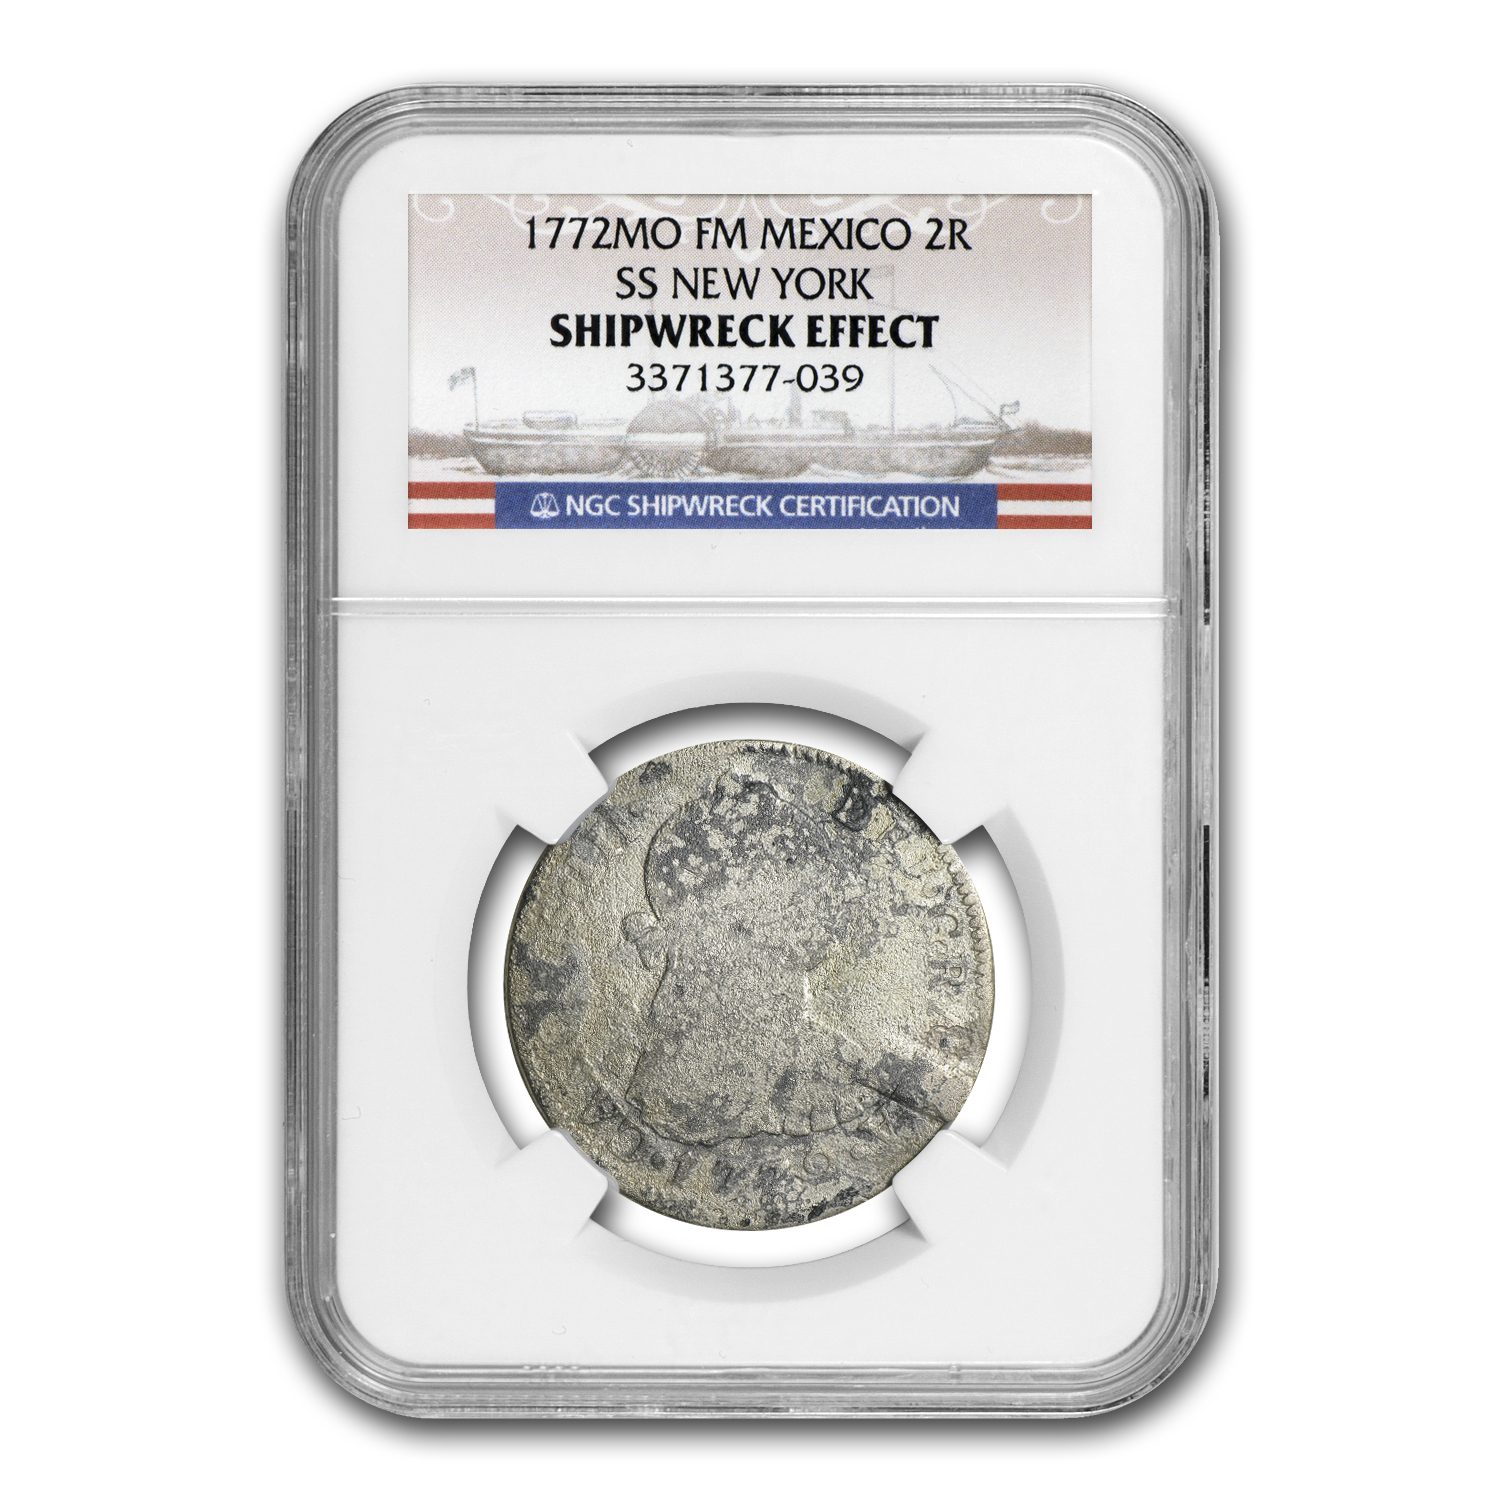 1772 MO FM Mexico 2R SS New York SHIPWRECK EFFECT Coin NGC